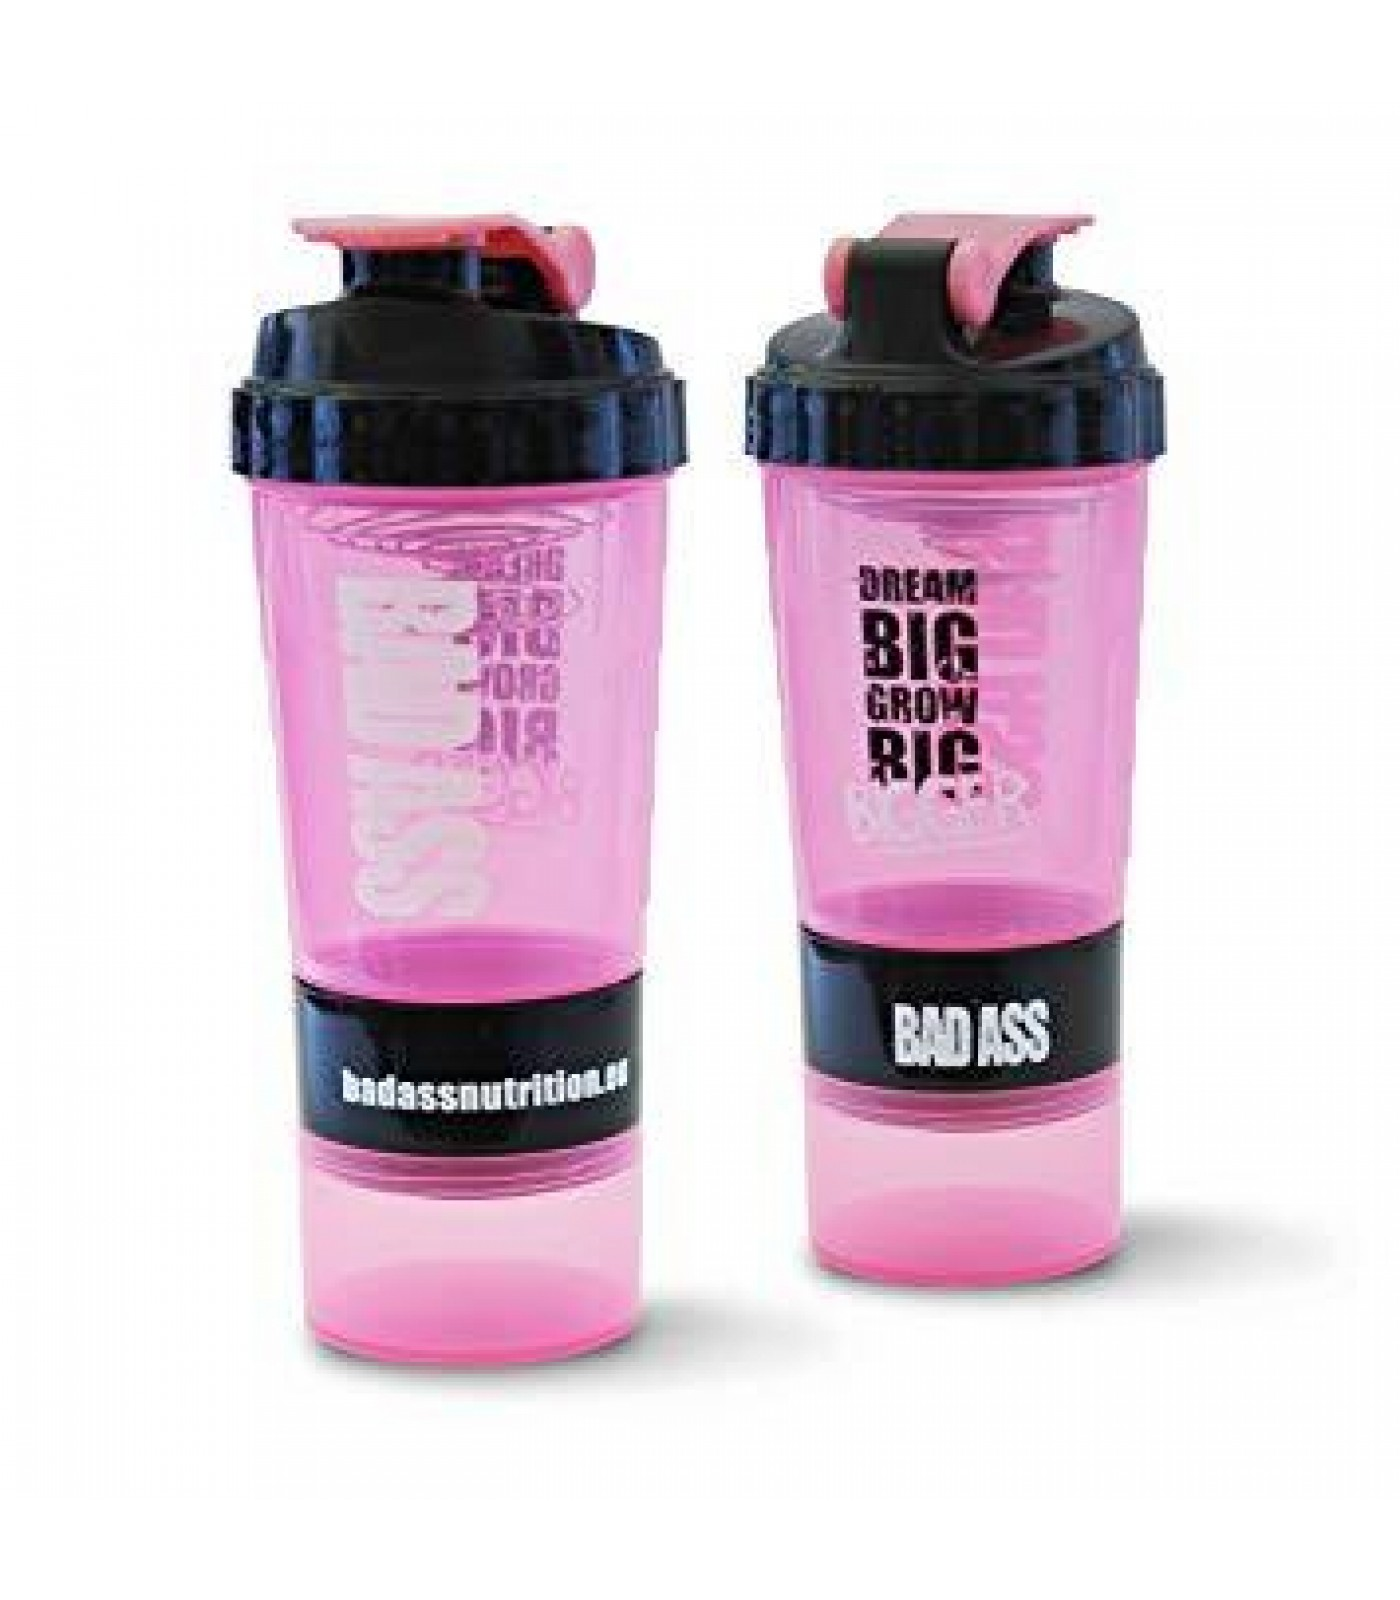 BAD ASS - BAD ASS / Shaker / Dream Big